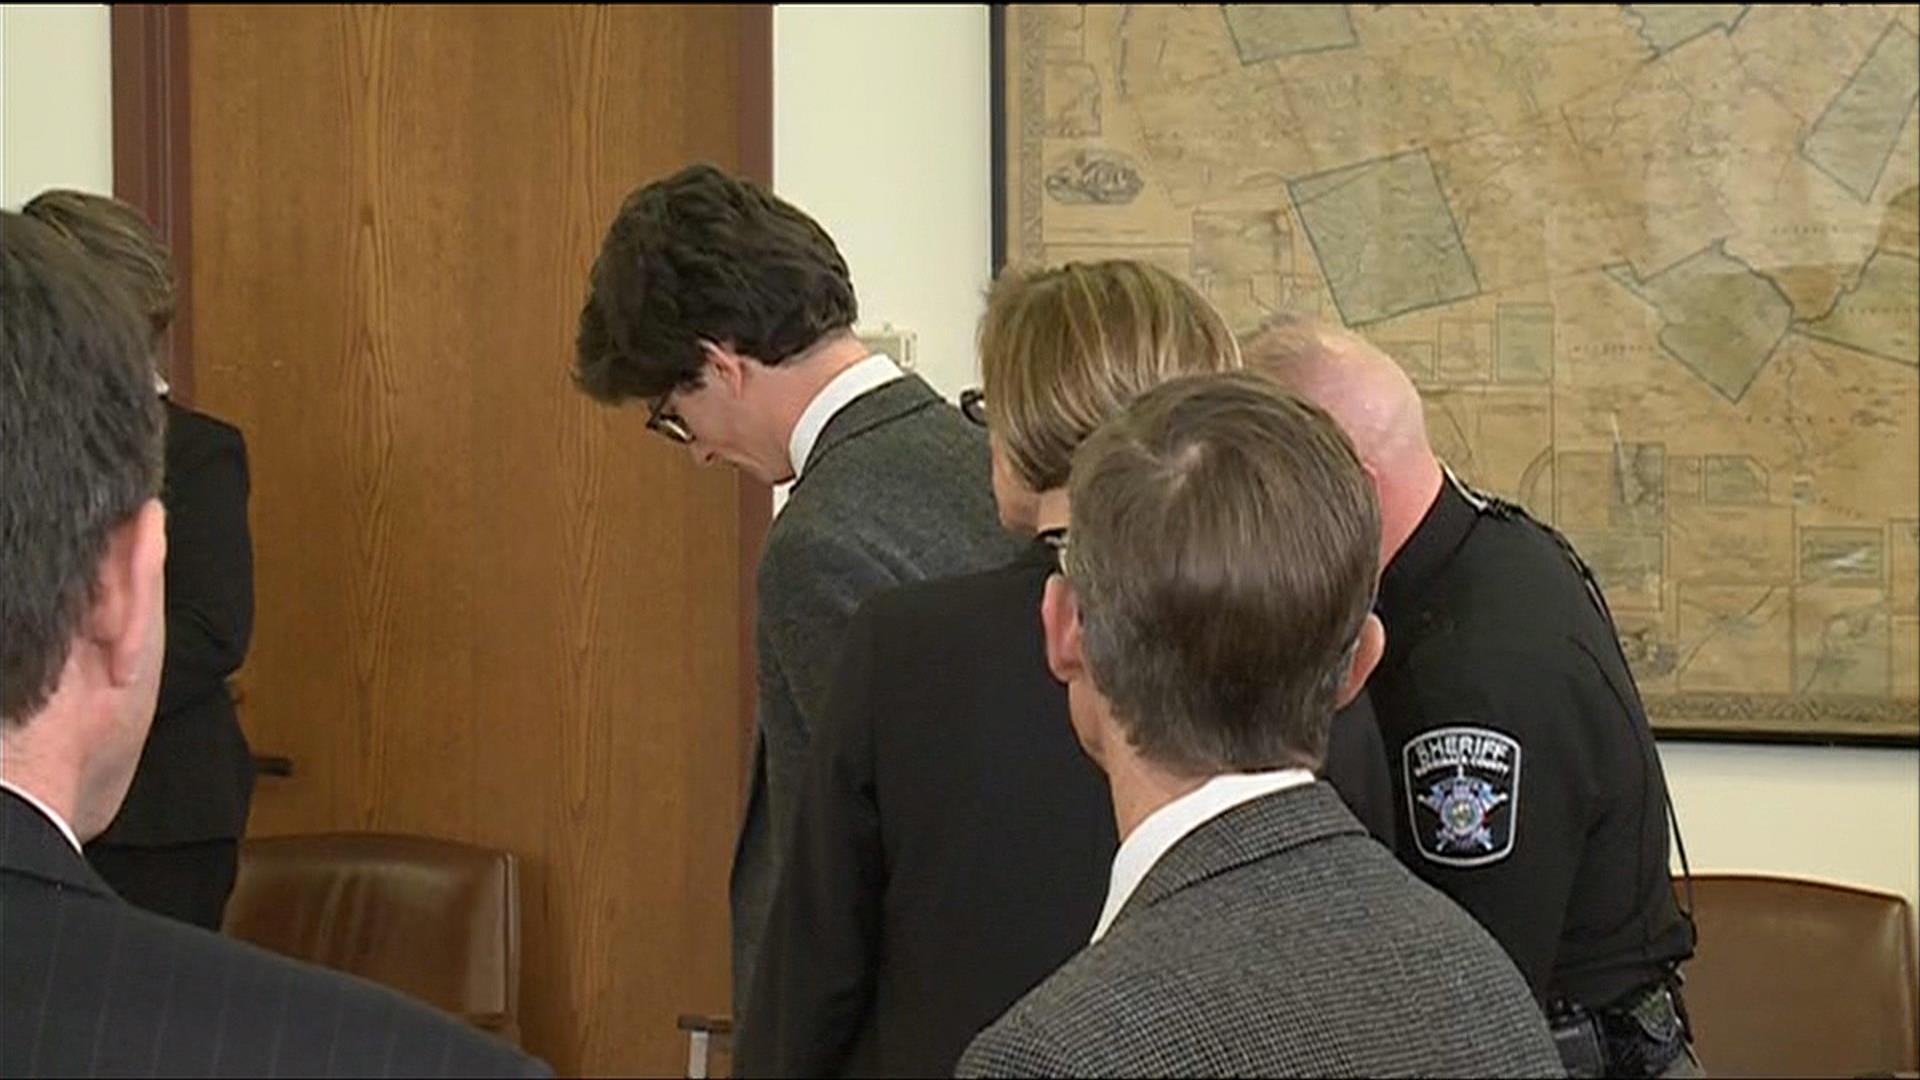 Judges Revokes Owen Labrie's Bail